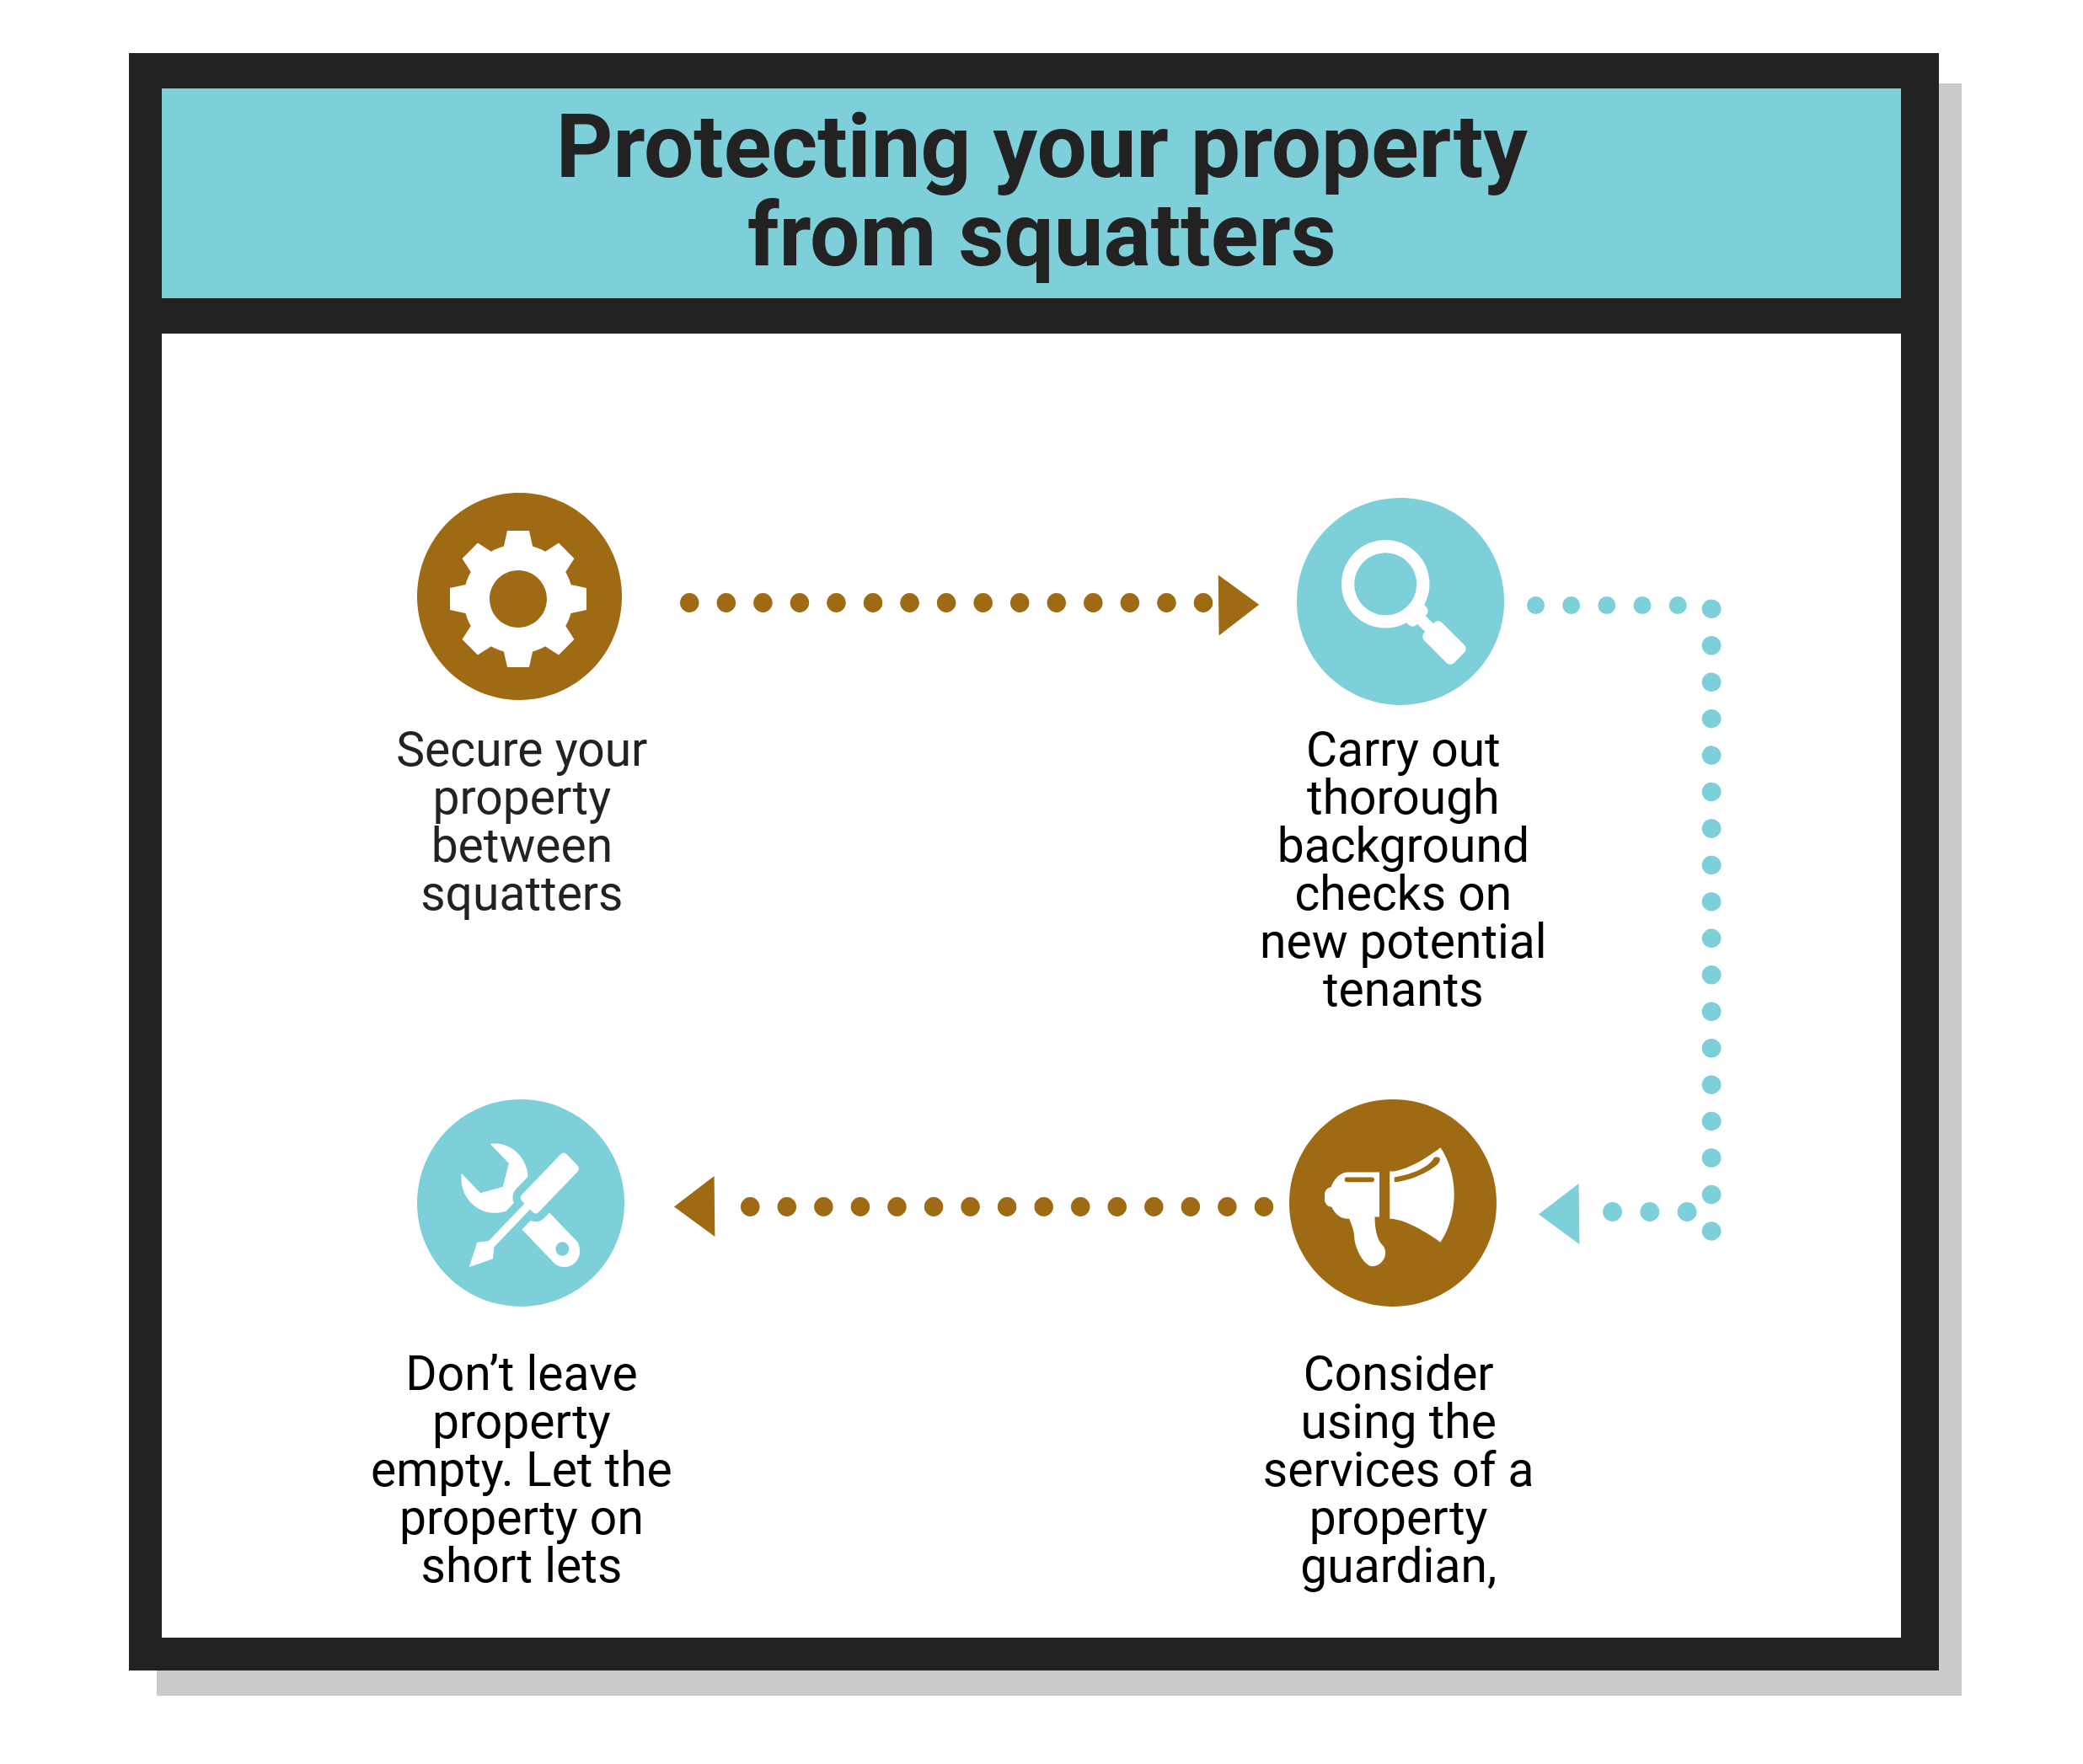 How to protect your property from squatters